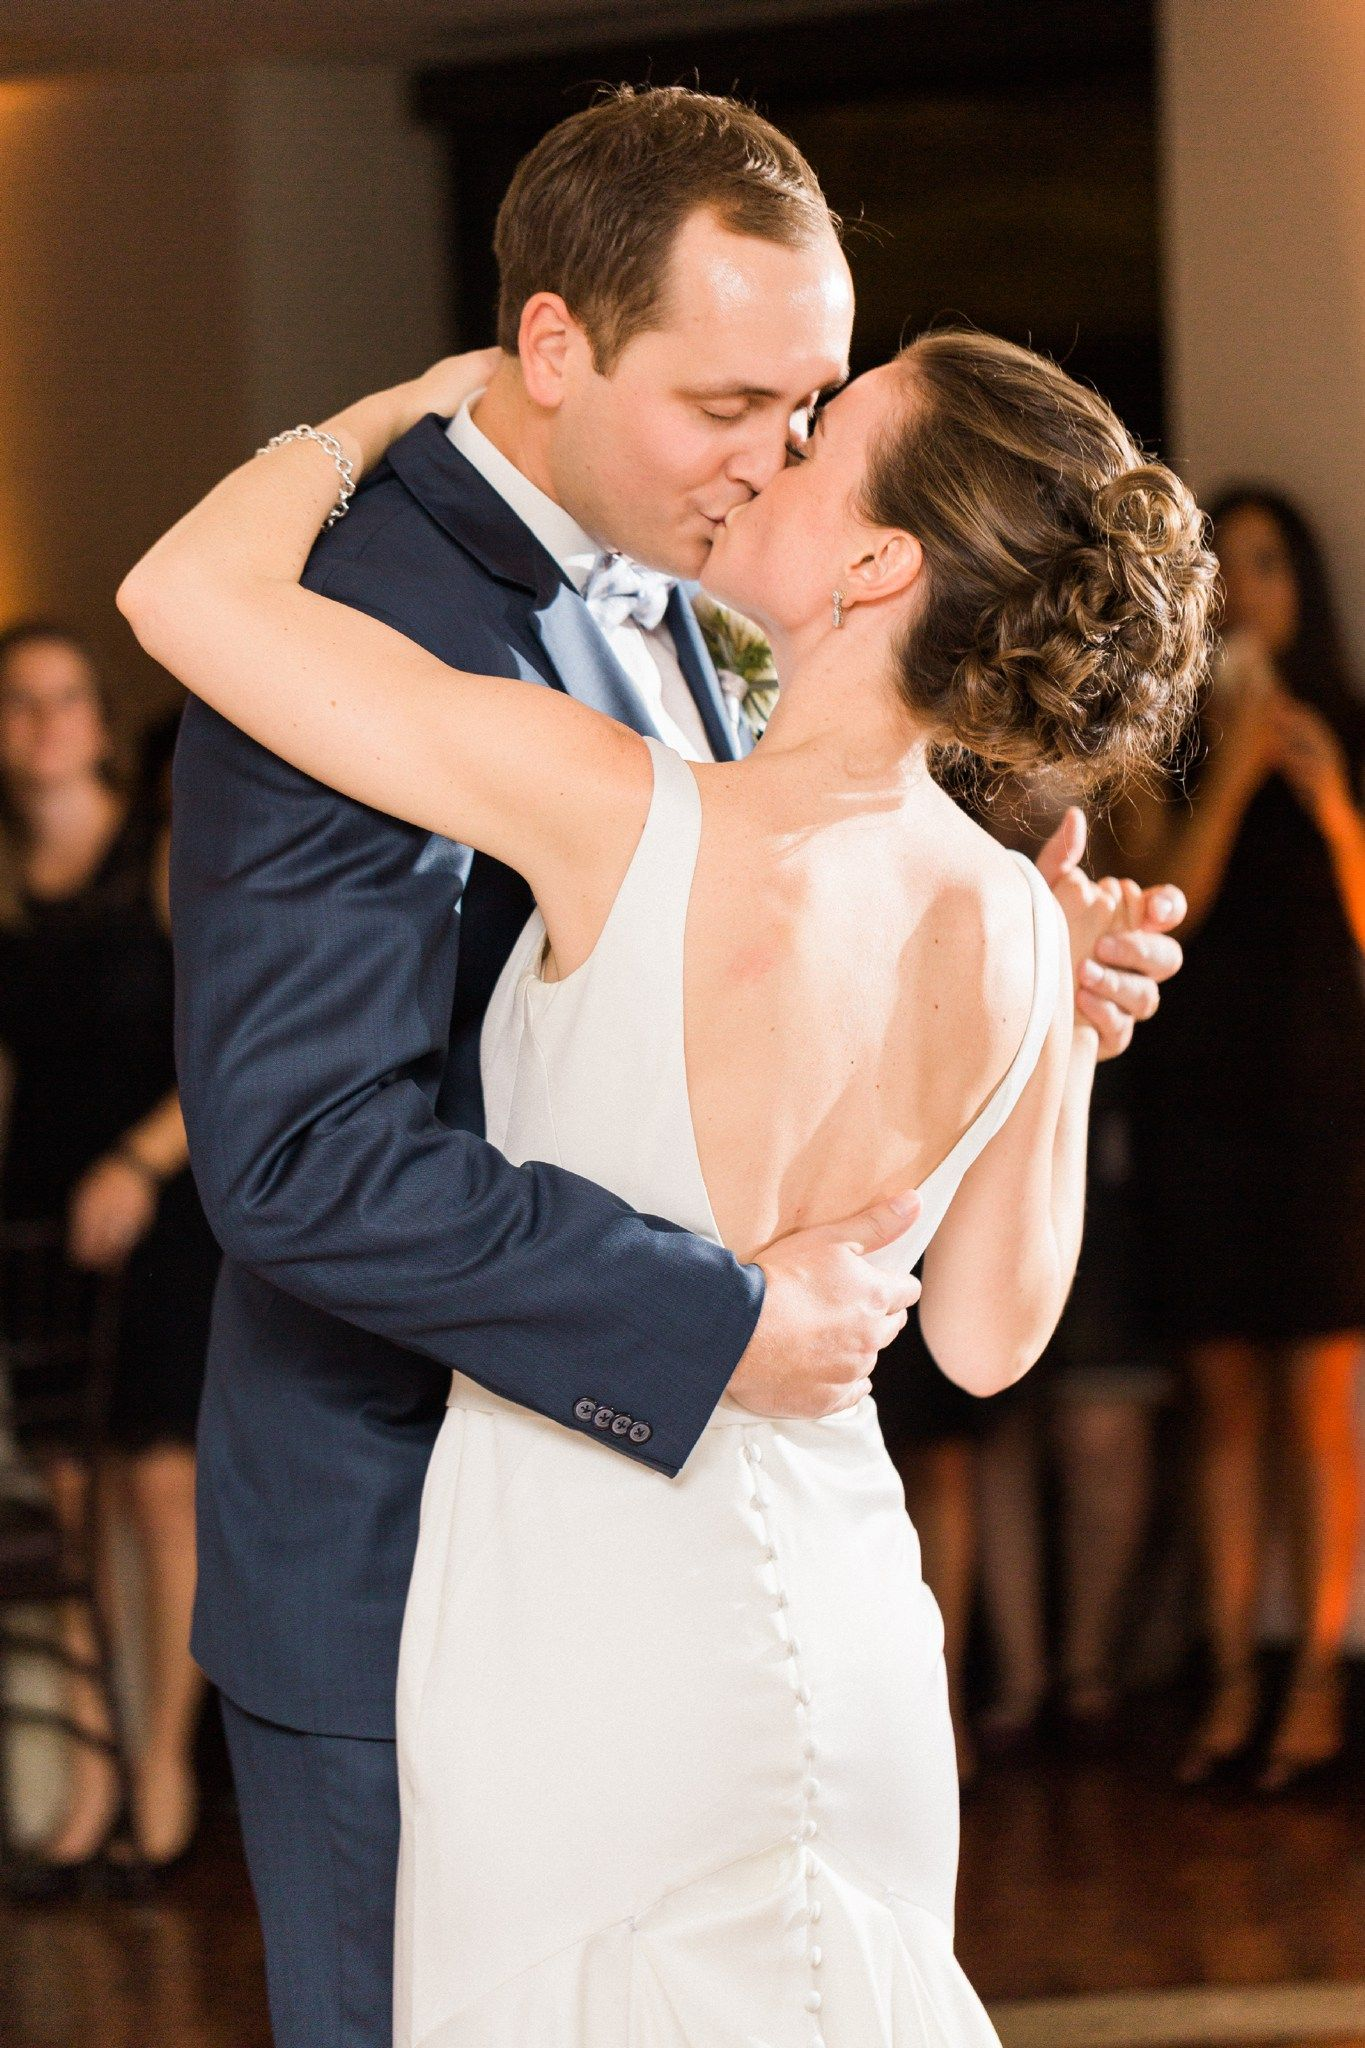 Bostonus state room wedding photographed by deborah zoe photography